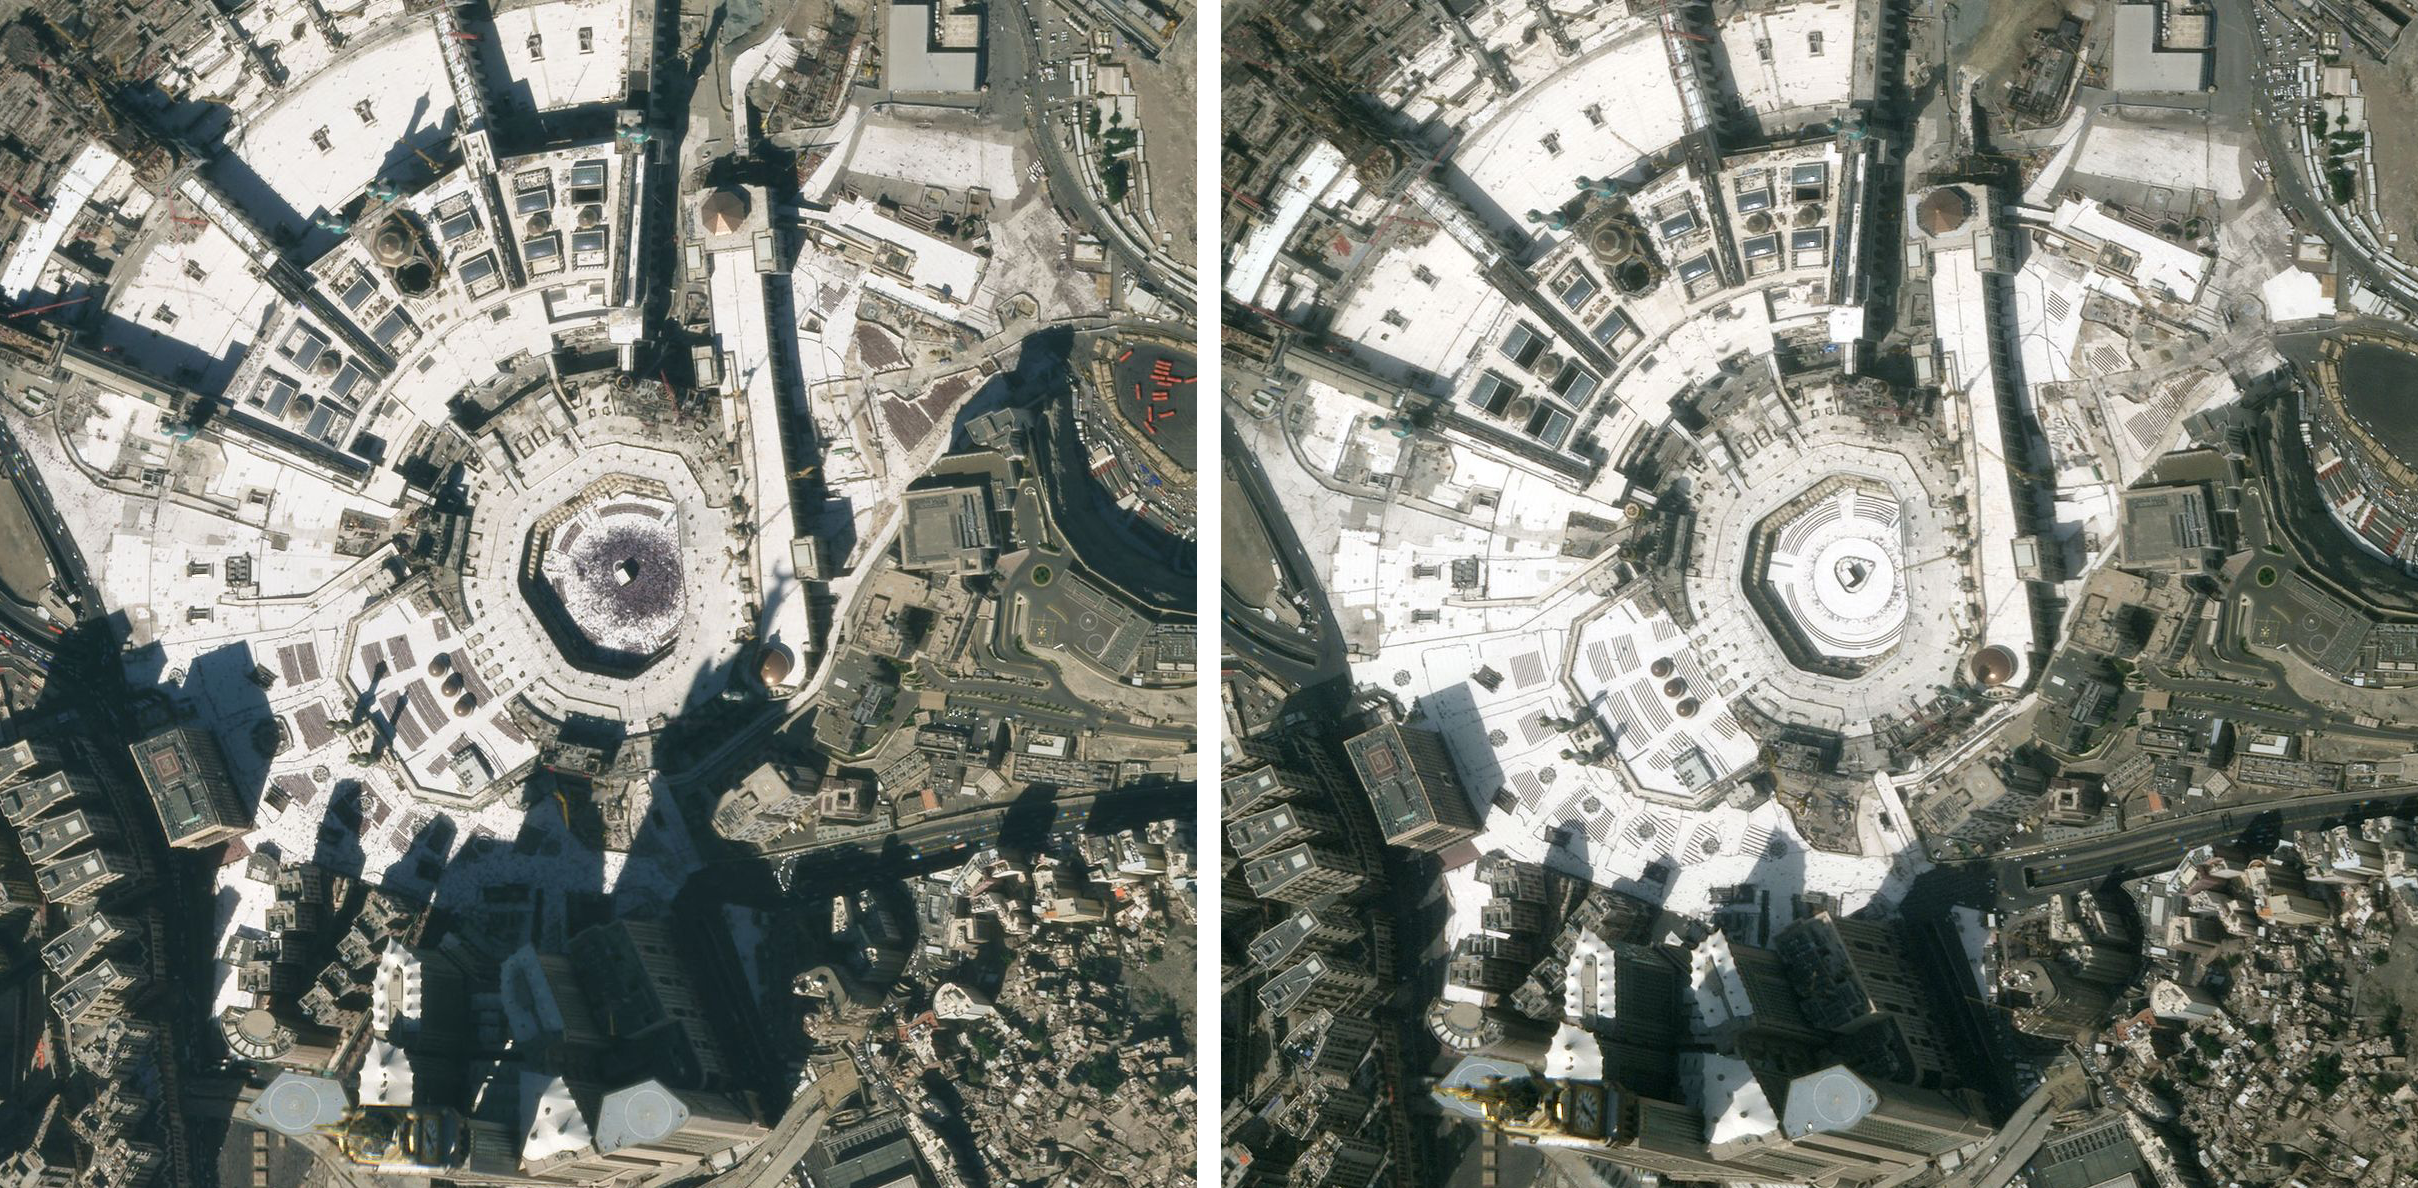 Planet imagery shows the crowded Great Mosque of Mecca, Islam's holiest site, on January 25, 2020 (left), and again on March 10, 2020 (right), after the nation limited access to the shrine and suspended all entrance and prayers. © 2020, Planet Labs Inc. All Rights Reserved.